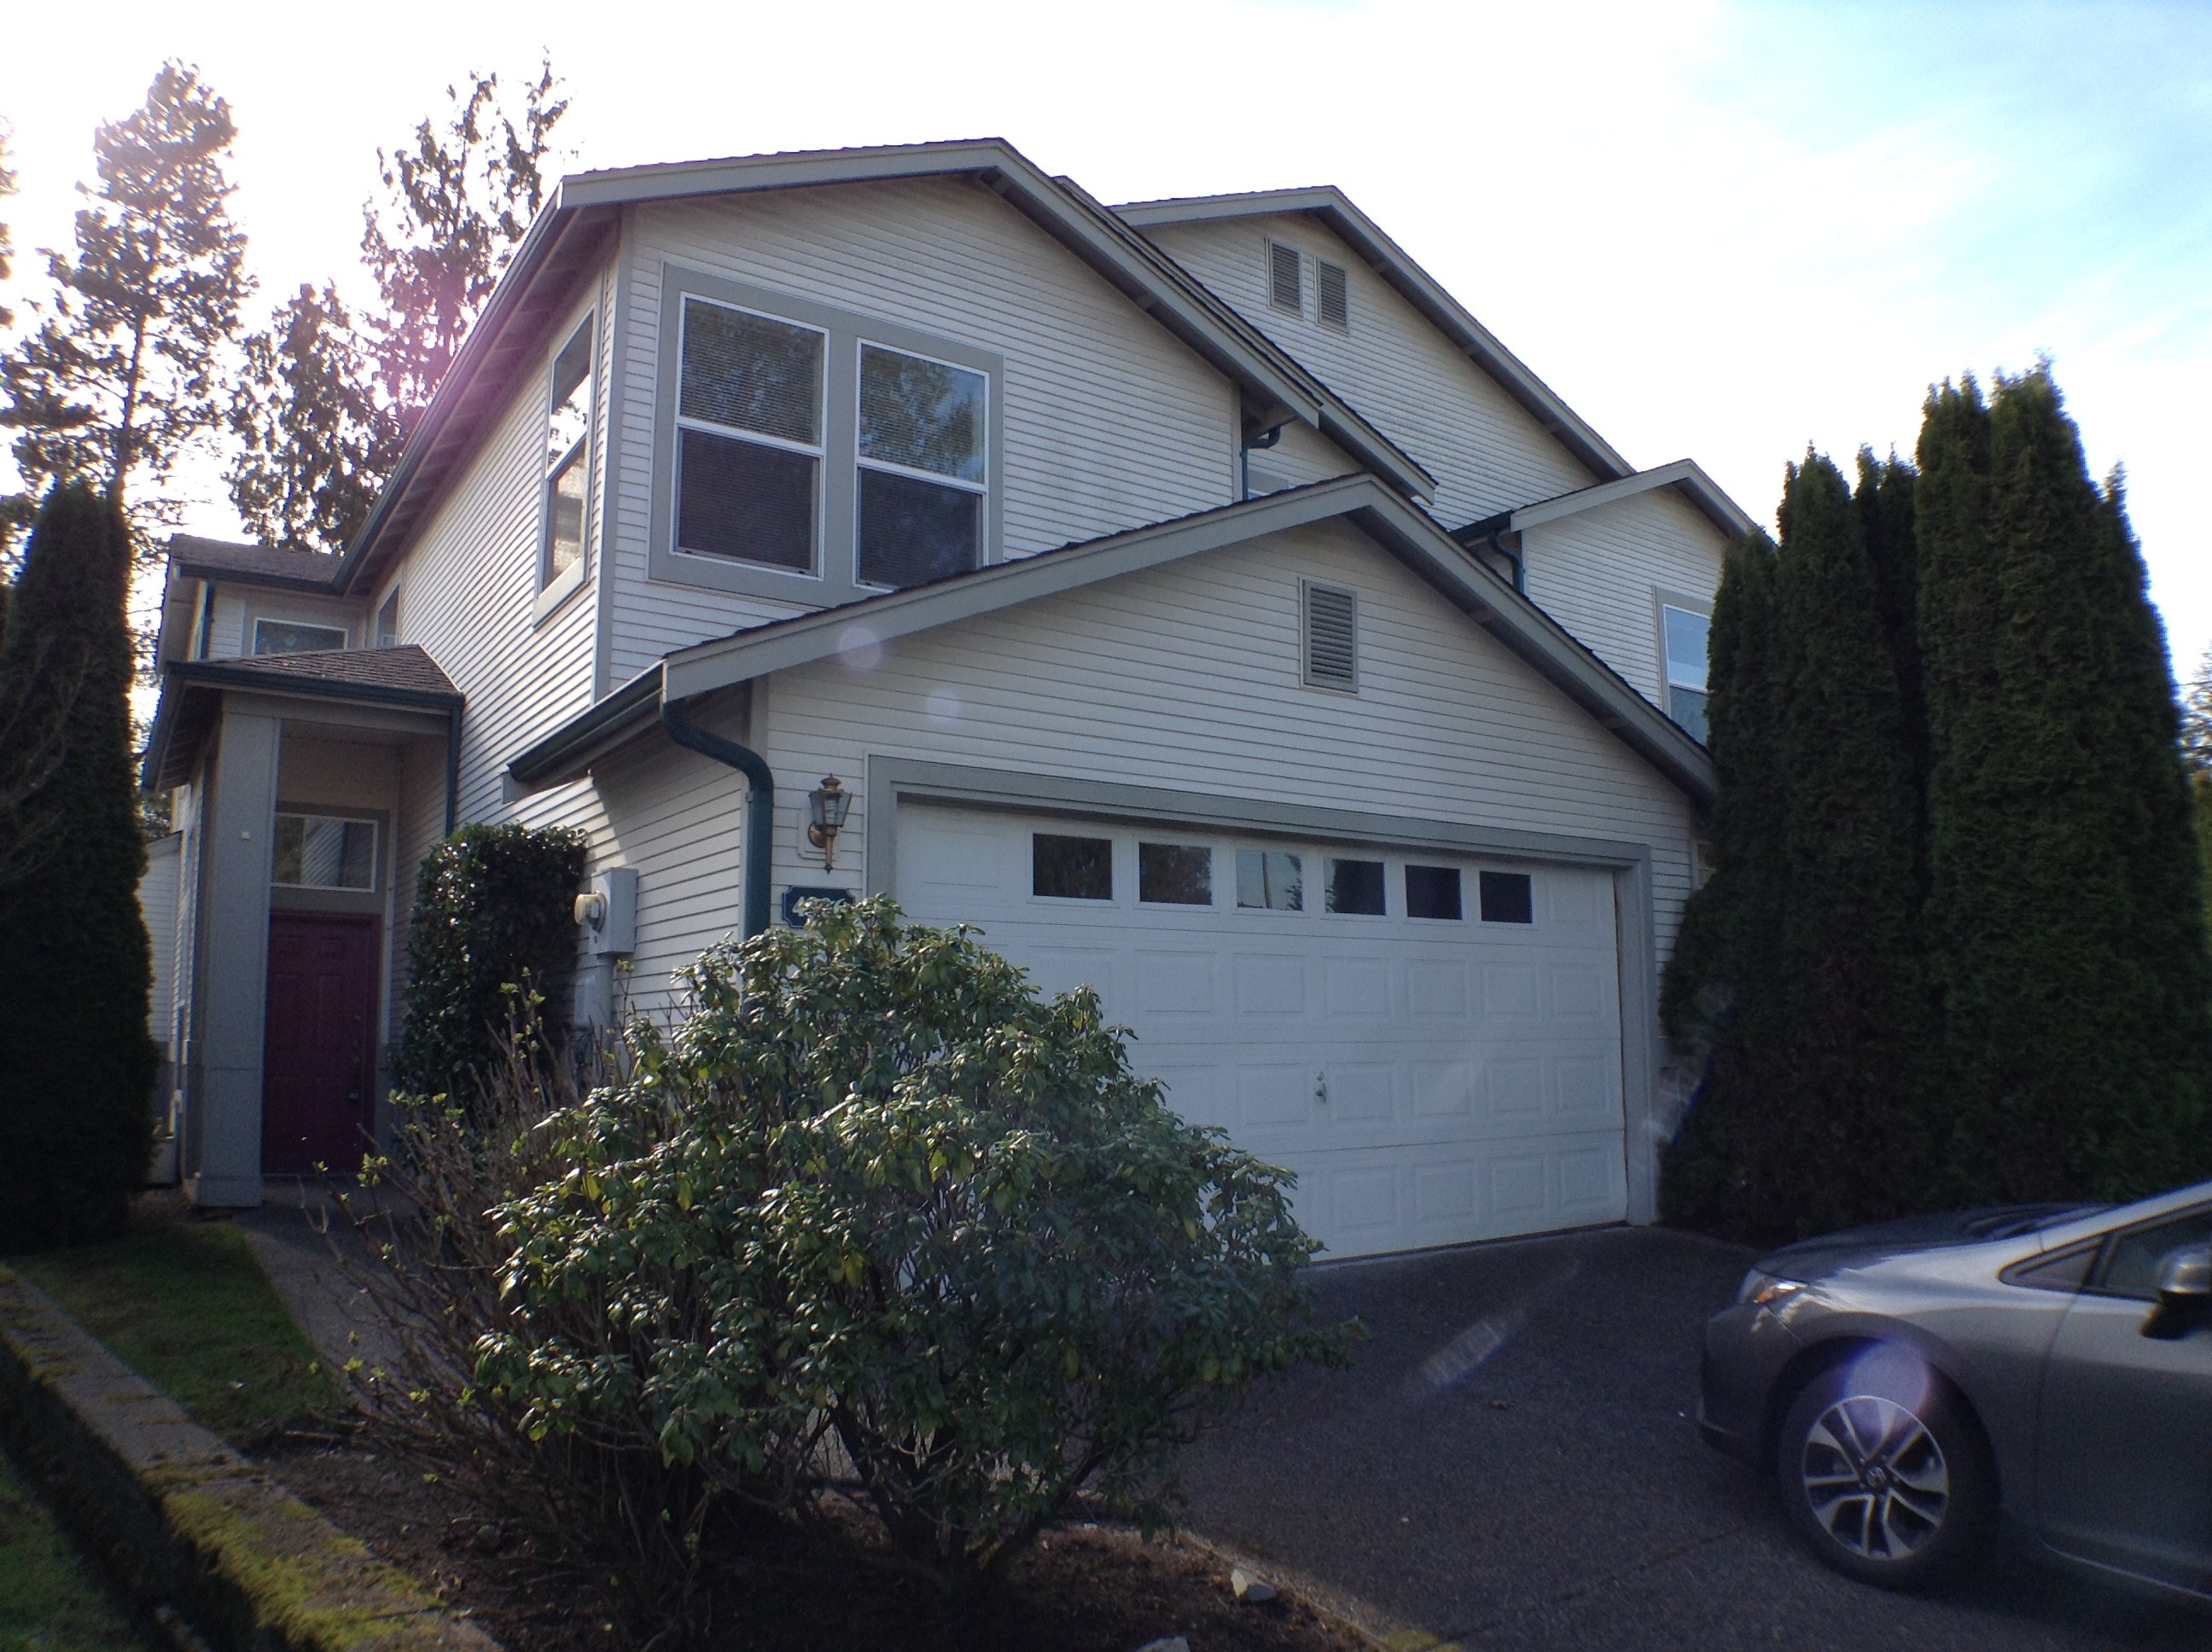 Townhouse for Rent in Mountlake Terrace